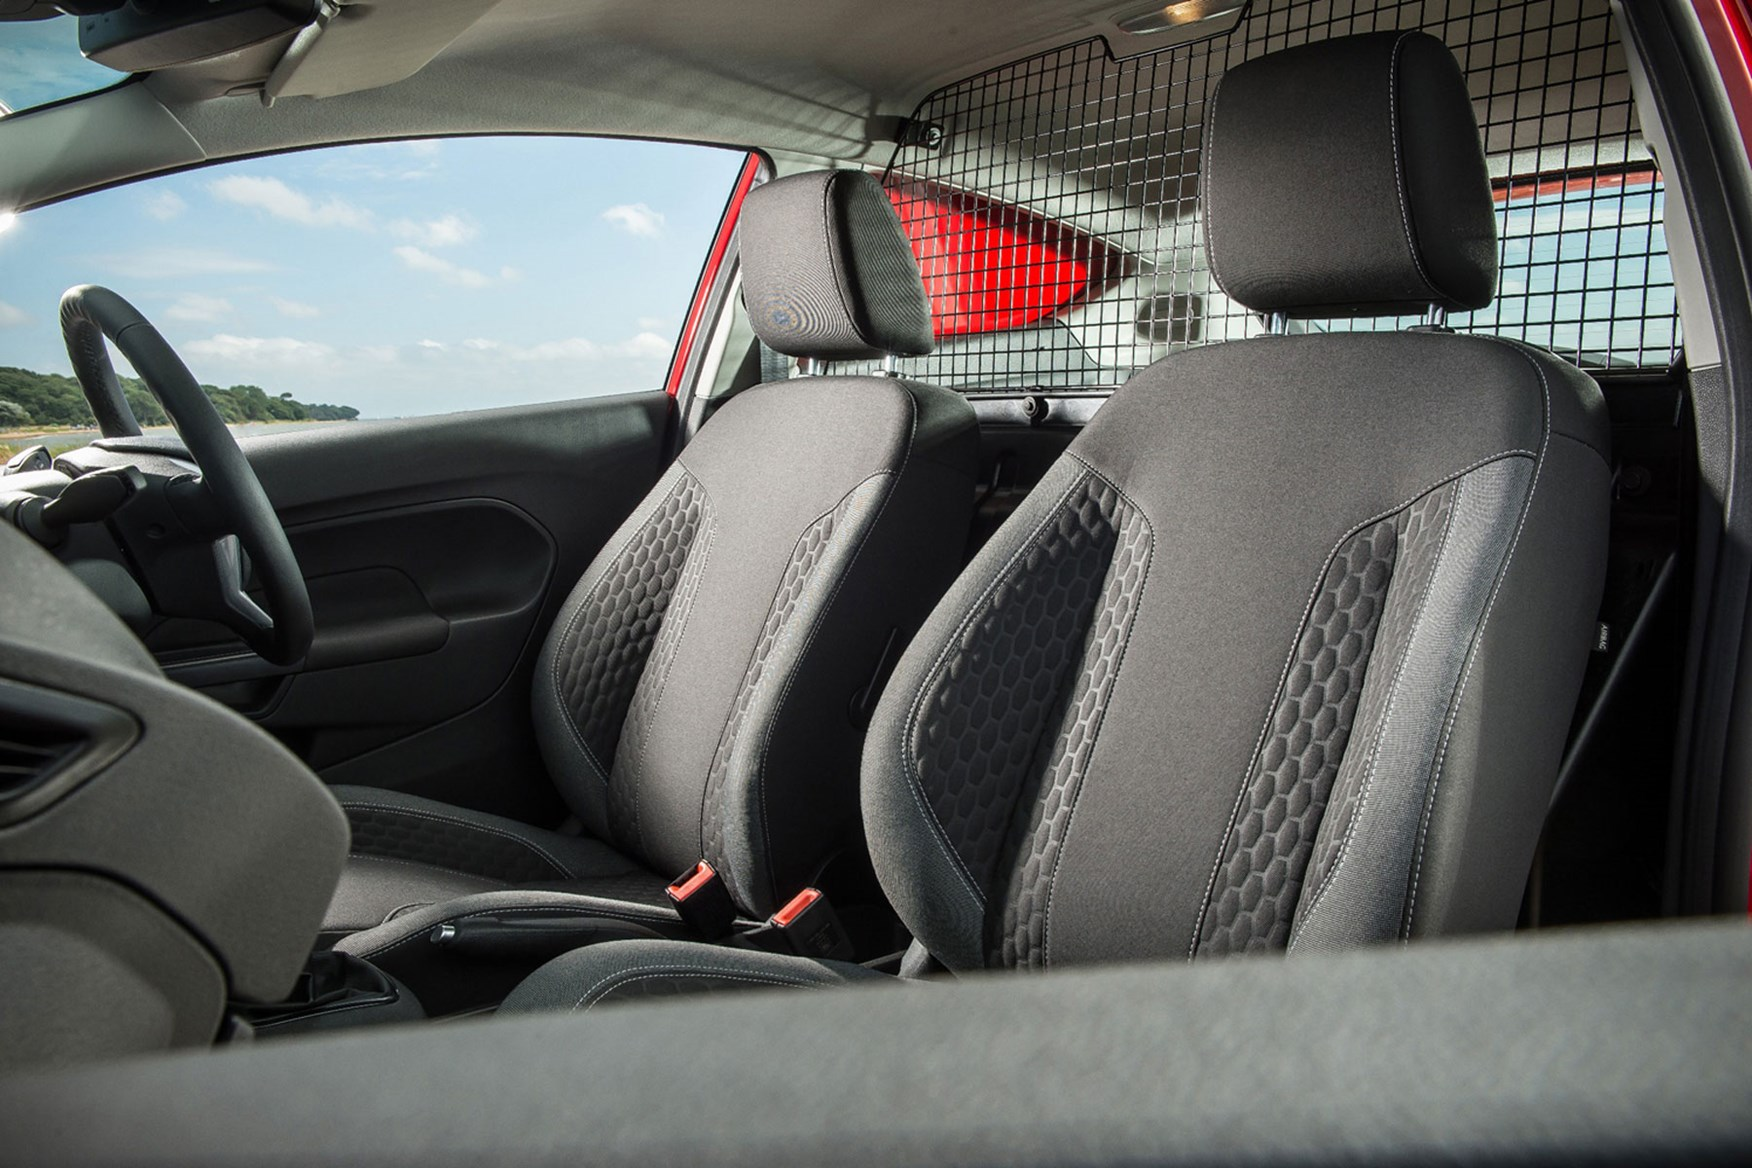 Ford Fiesta Van (2009-2017) seats